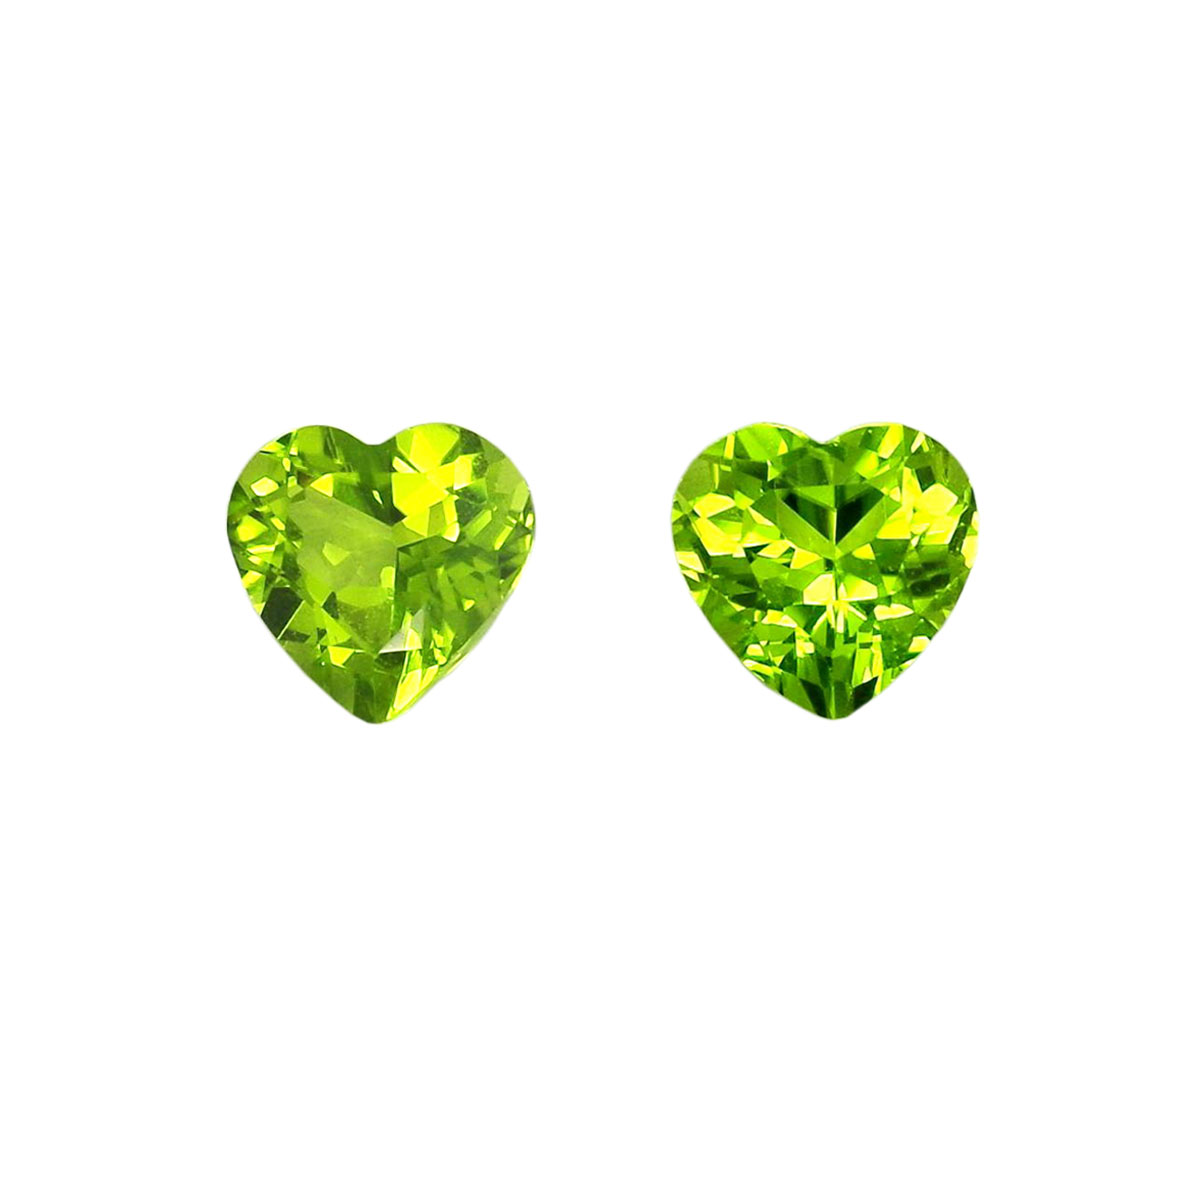 A pair of 9mm heart-shaped high purity olivine bare stones can be used as rings, pendants, earrings and belt certificates (issued)